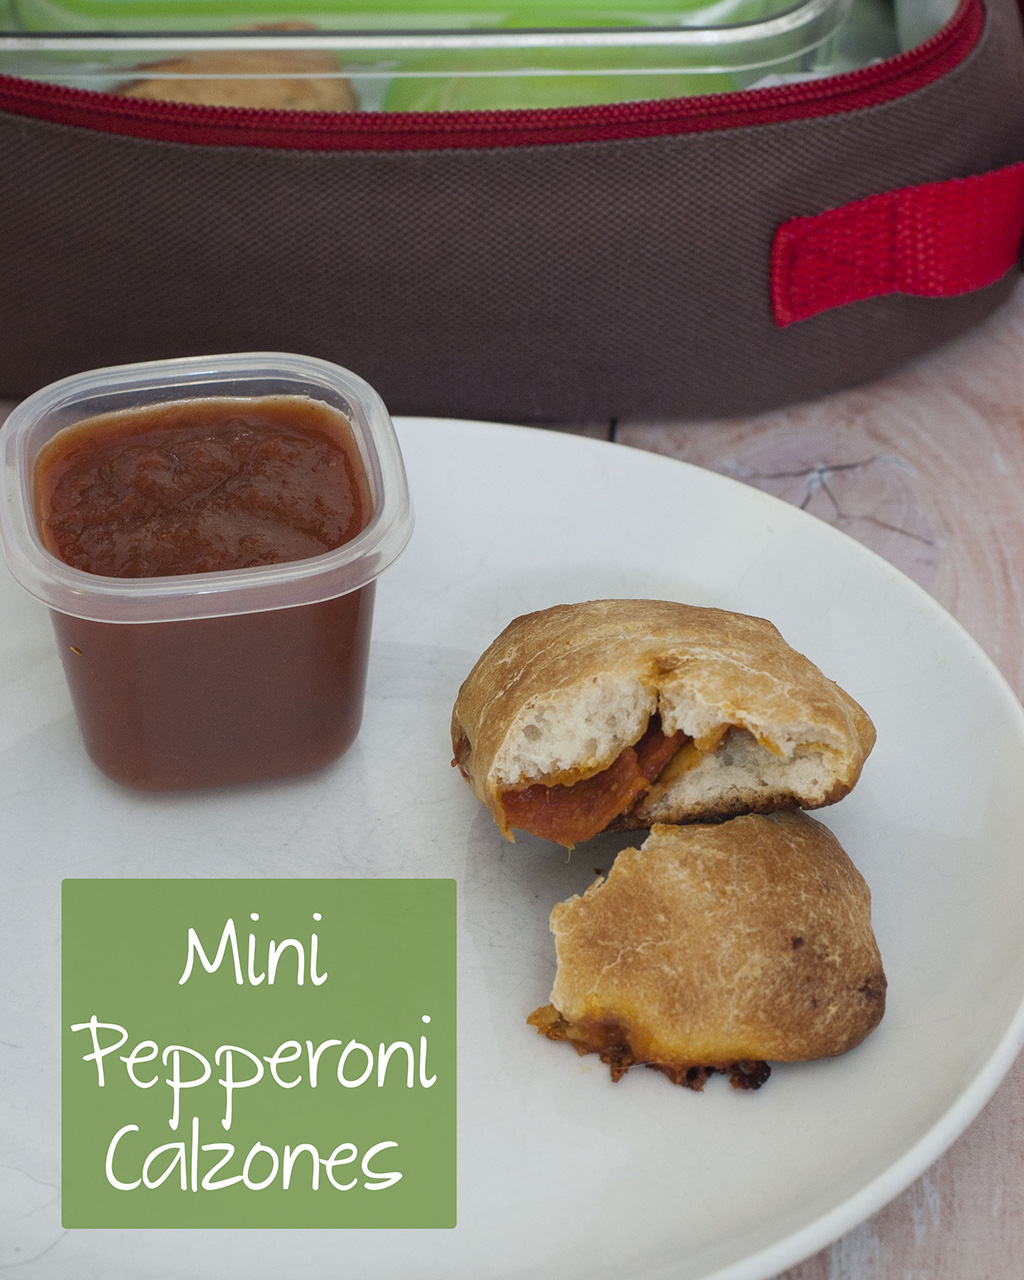 You'll be parent of the year when you send your kids back to school with mini pepperoni calzones. They're easy to make in bulk and freeze. #SundaySupper TheRedheadBaker.com